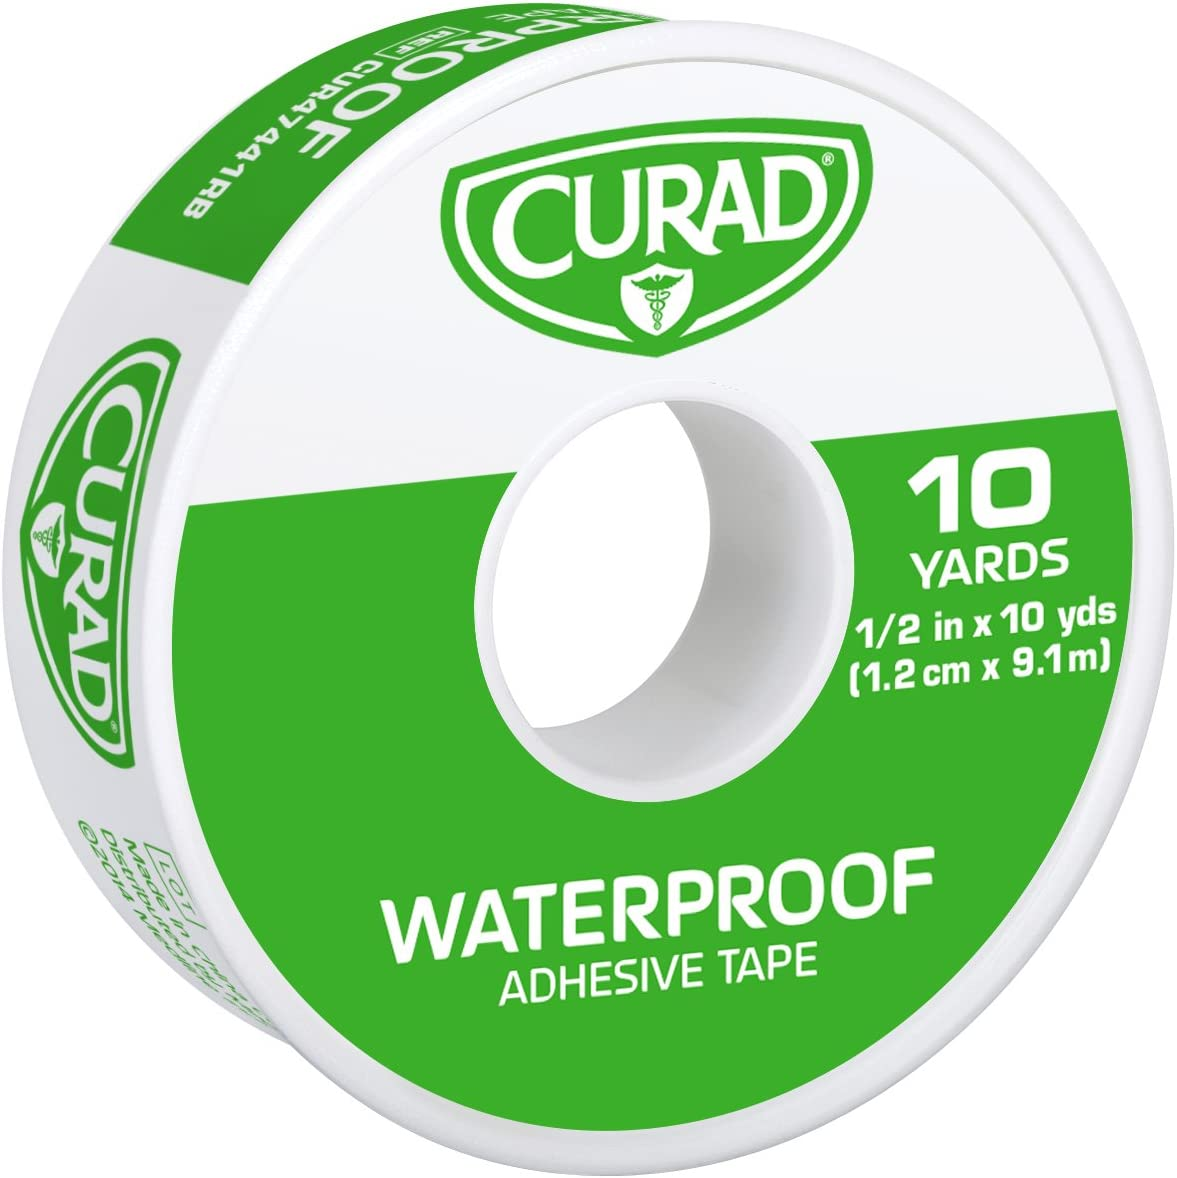 Curad Waterproof Adhesive Tape, 1/2 inch x 10 yards (Pack of 6): Health & Personal Care